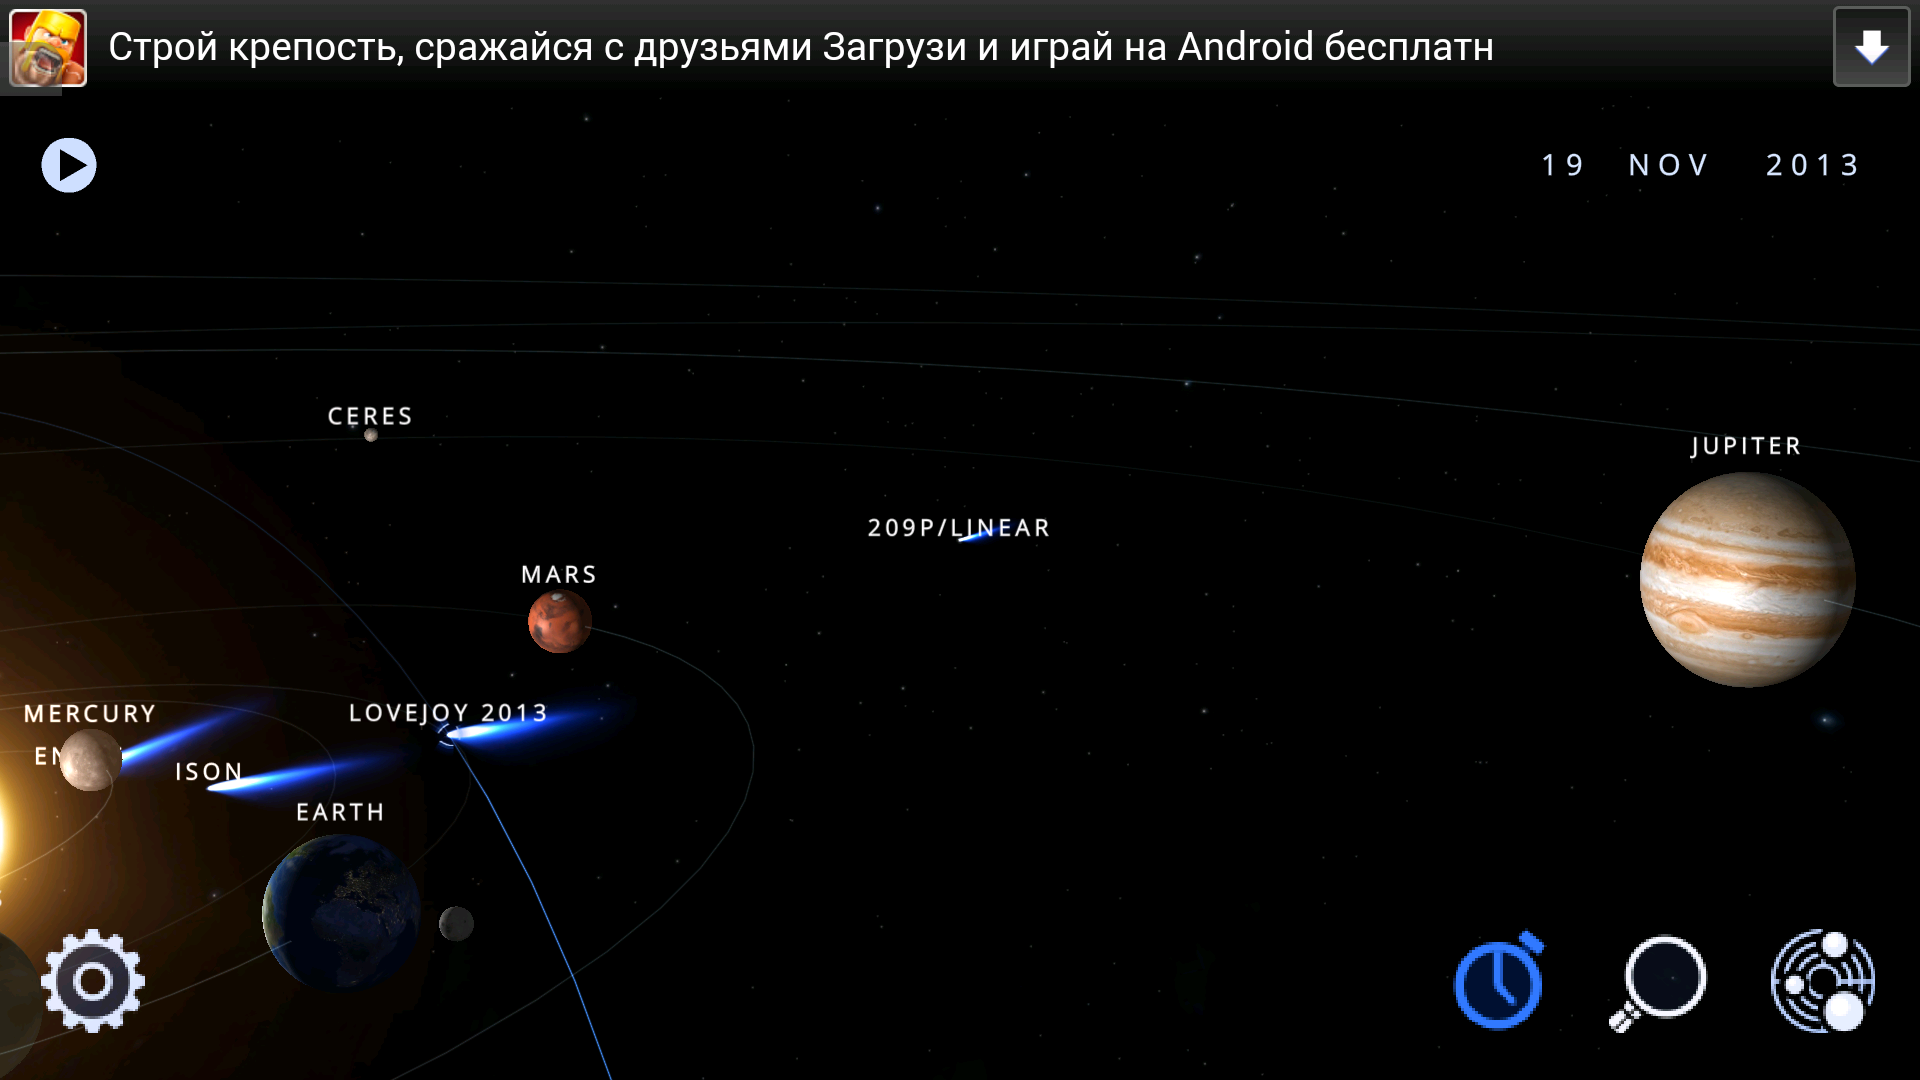 solar system scope full apk - photo #13